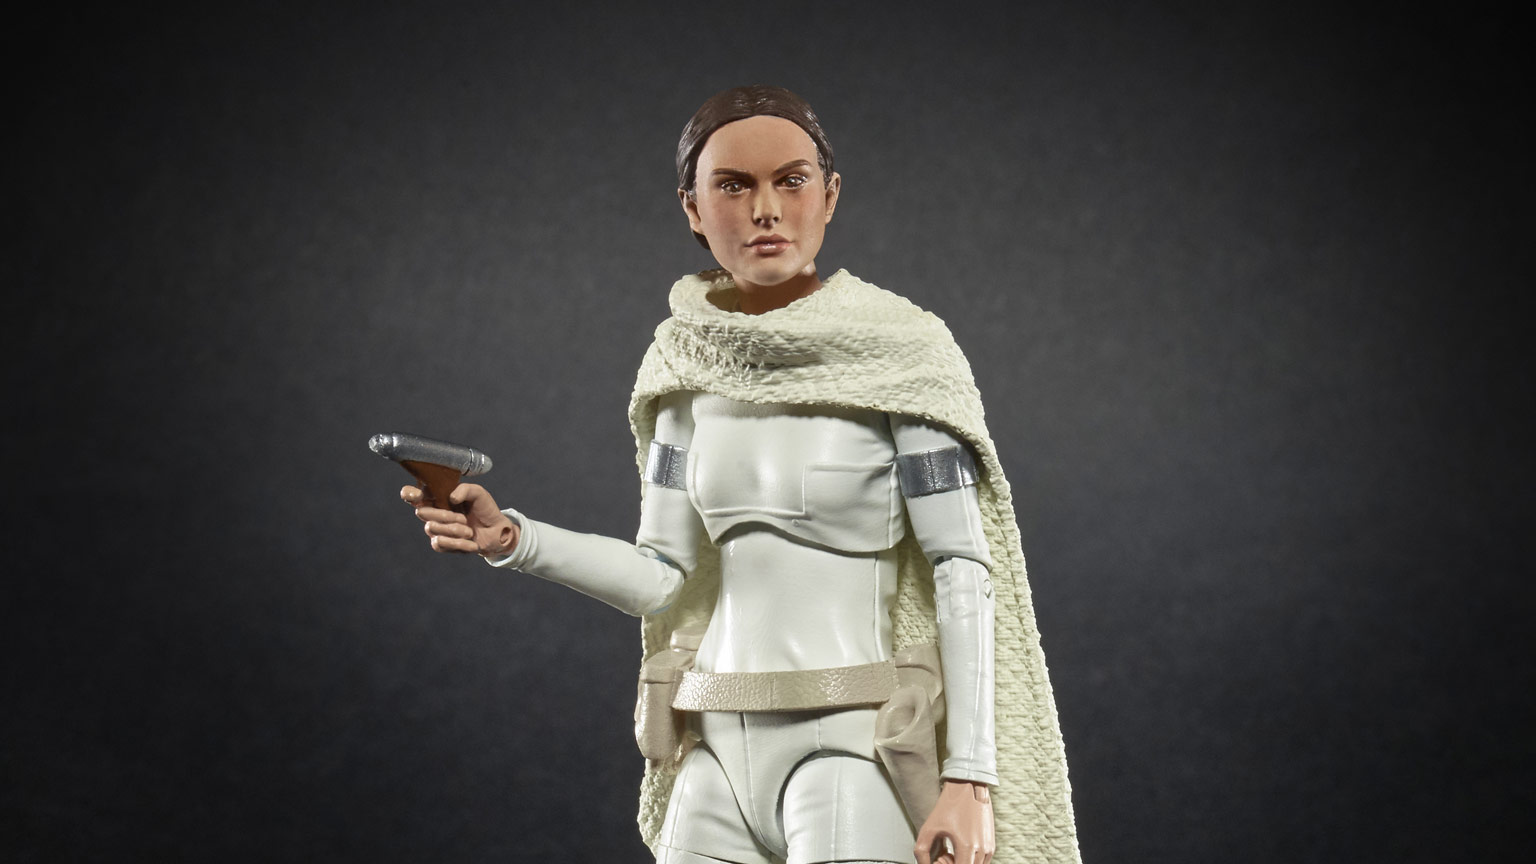 Padmé Amidala Star Wars: The Black Series figure.